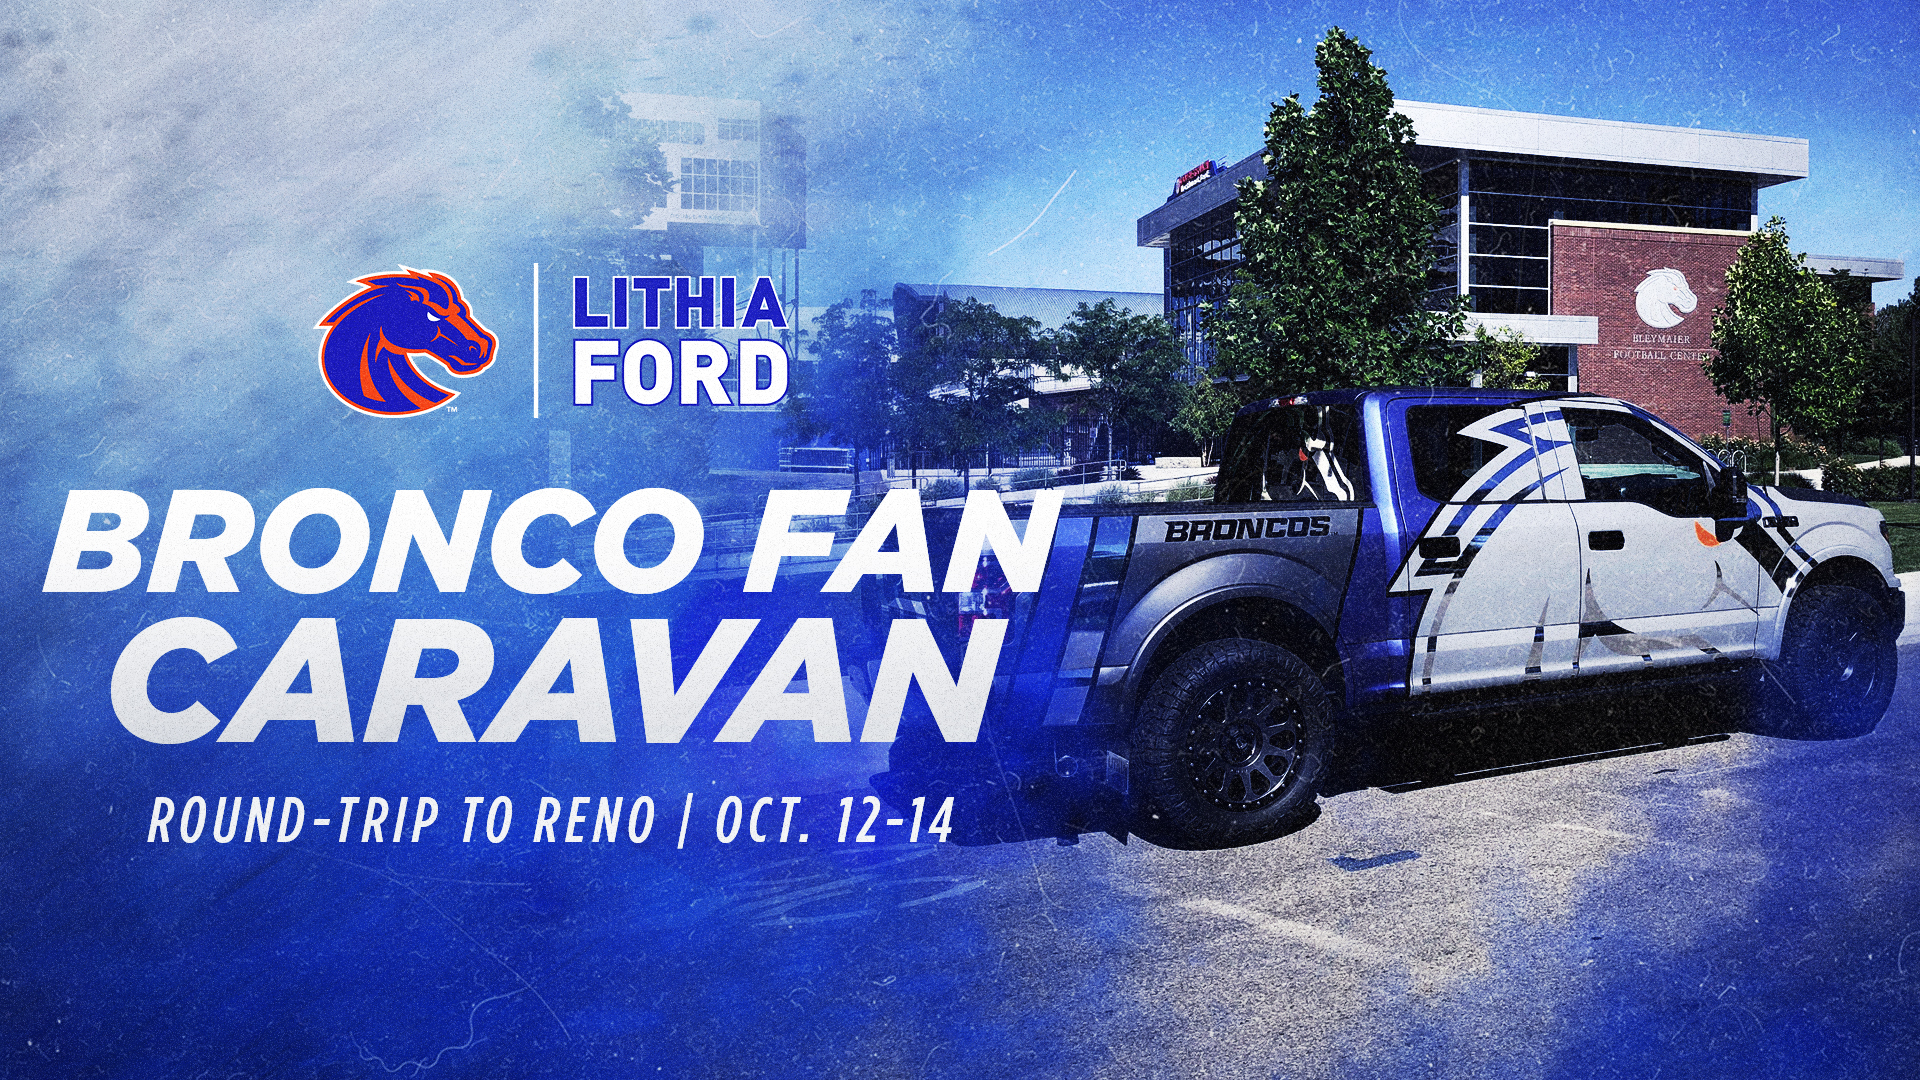 Lithia Ford Boise >> Lithia Ford Fan Caravan To Head To Reno Boise State University